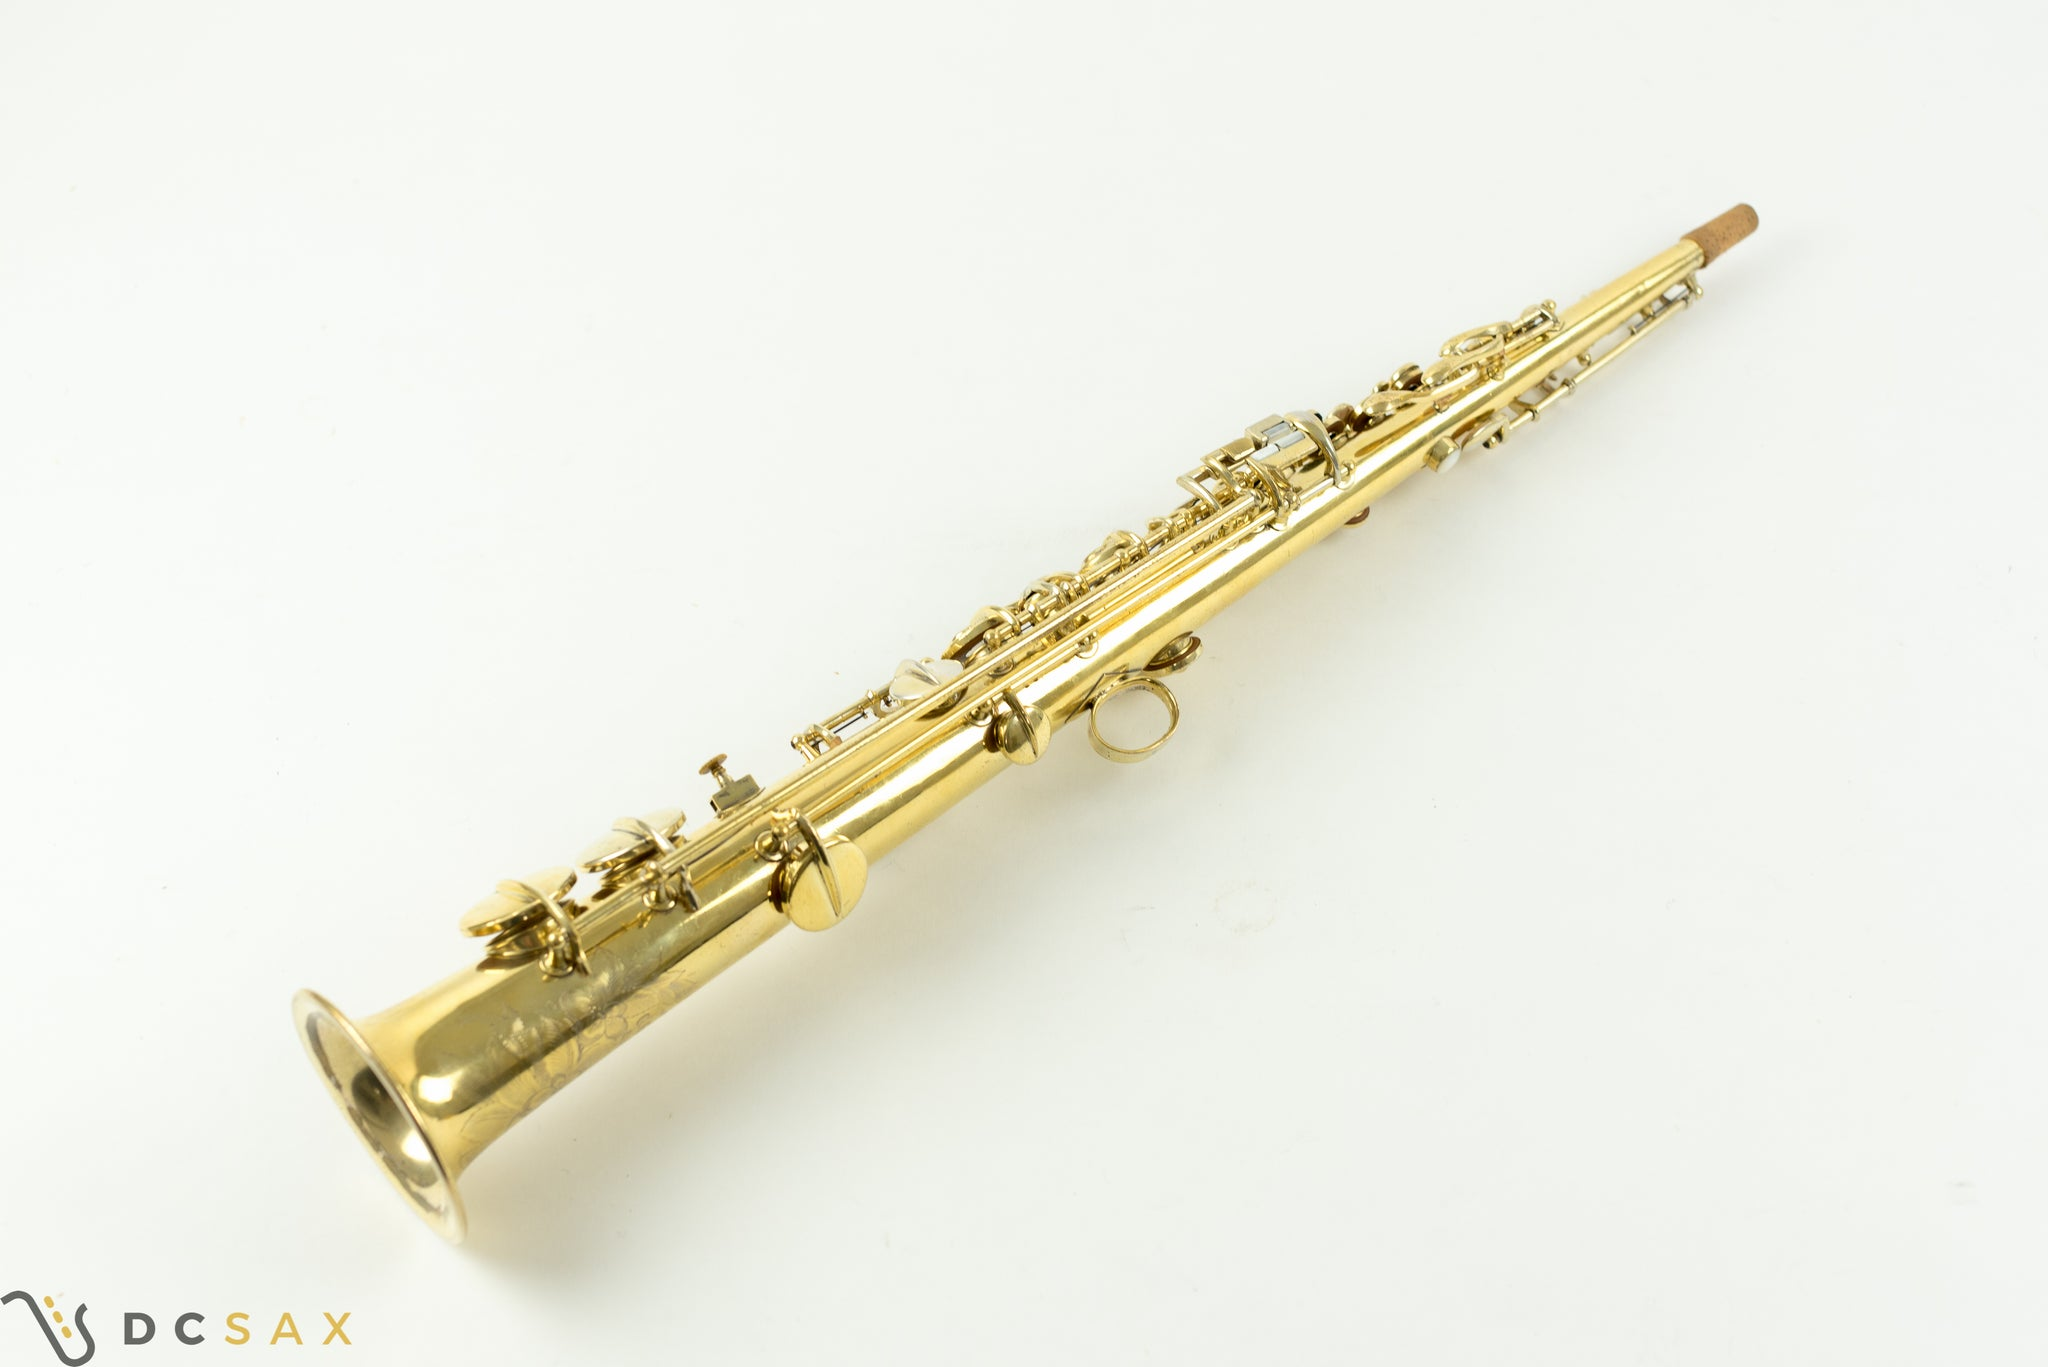 1923 Conn New Wonder Soprano Saxophone, Gold Plated, Fresh Overhaul